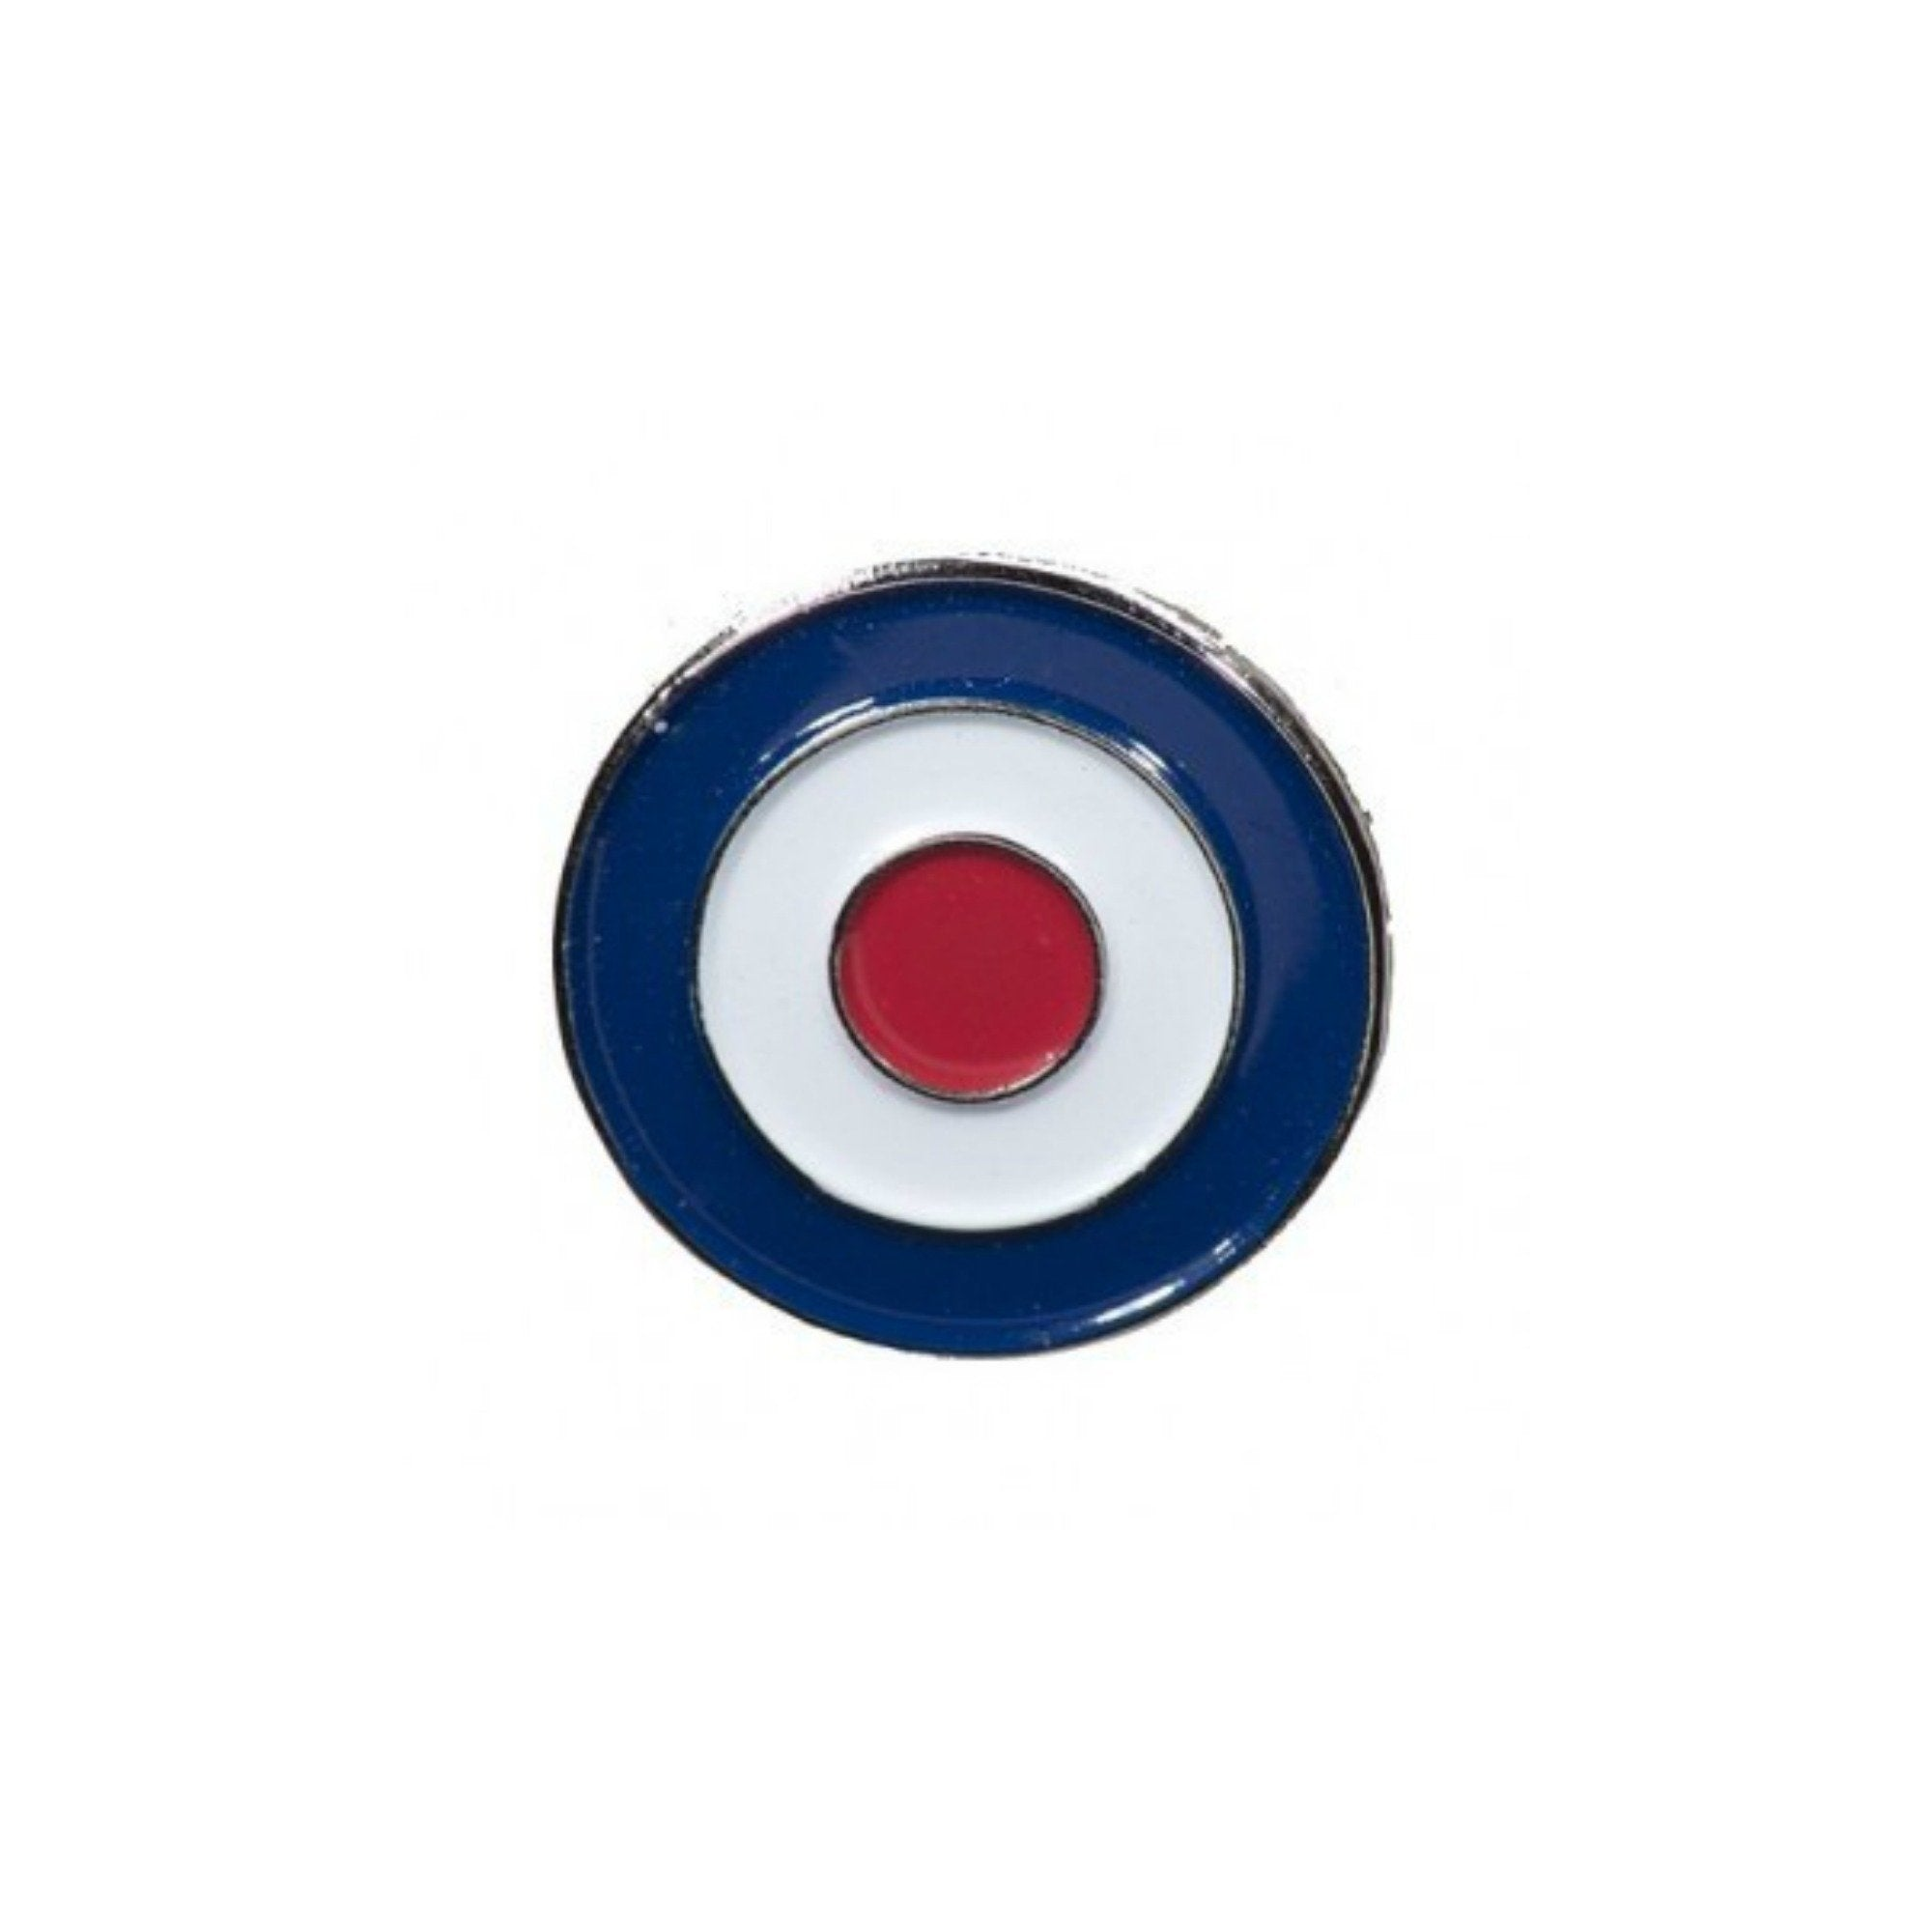 Mod Target Enamel Lapel Pin Badge - Minimum Mouse